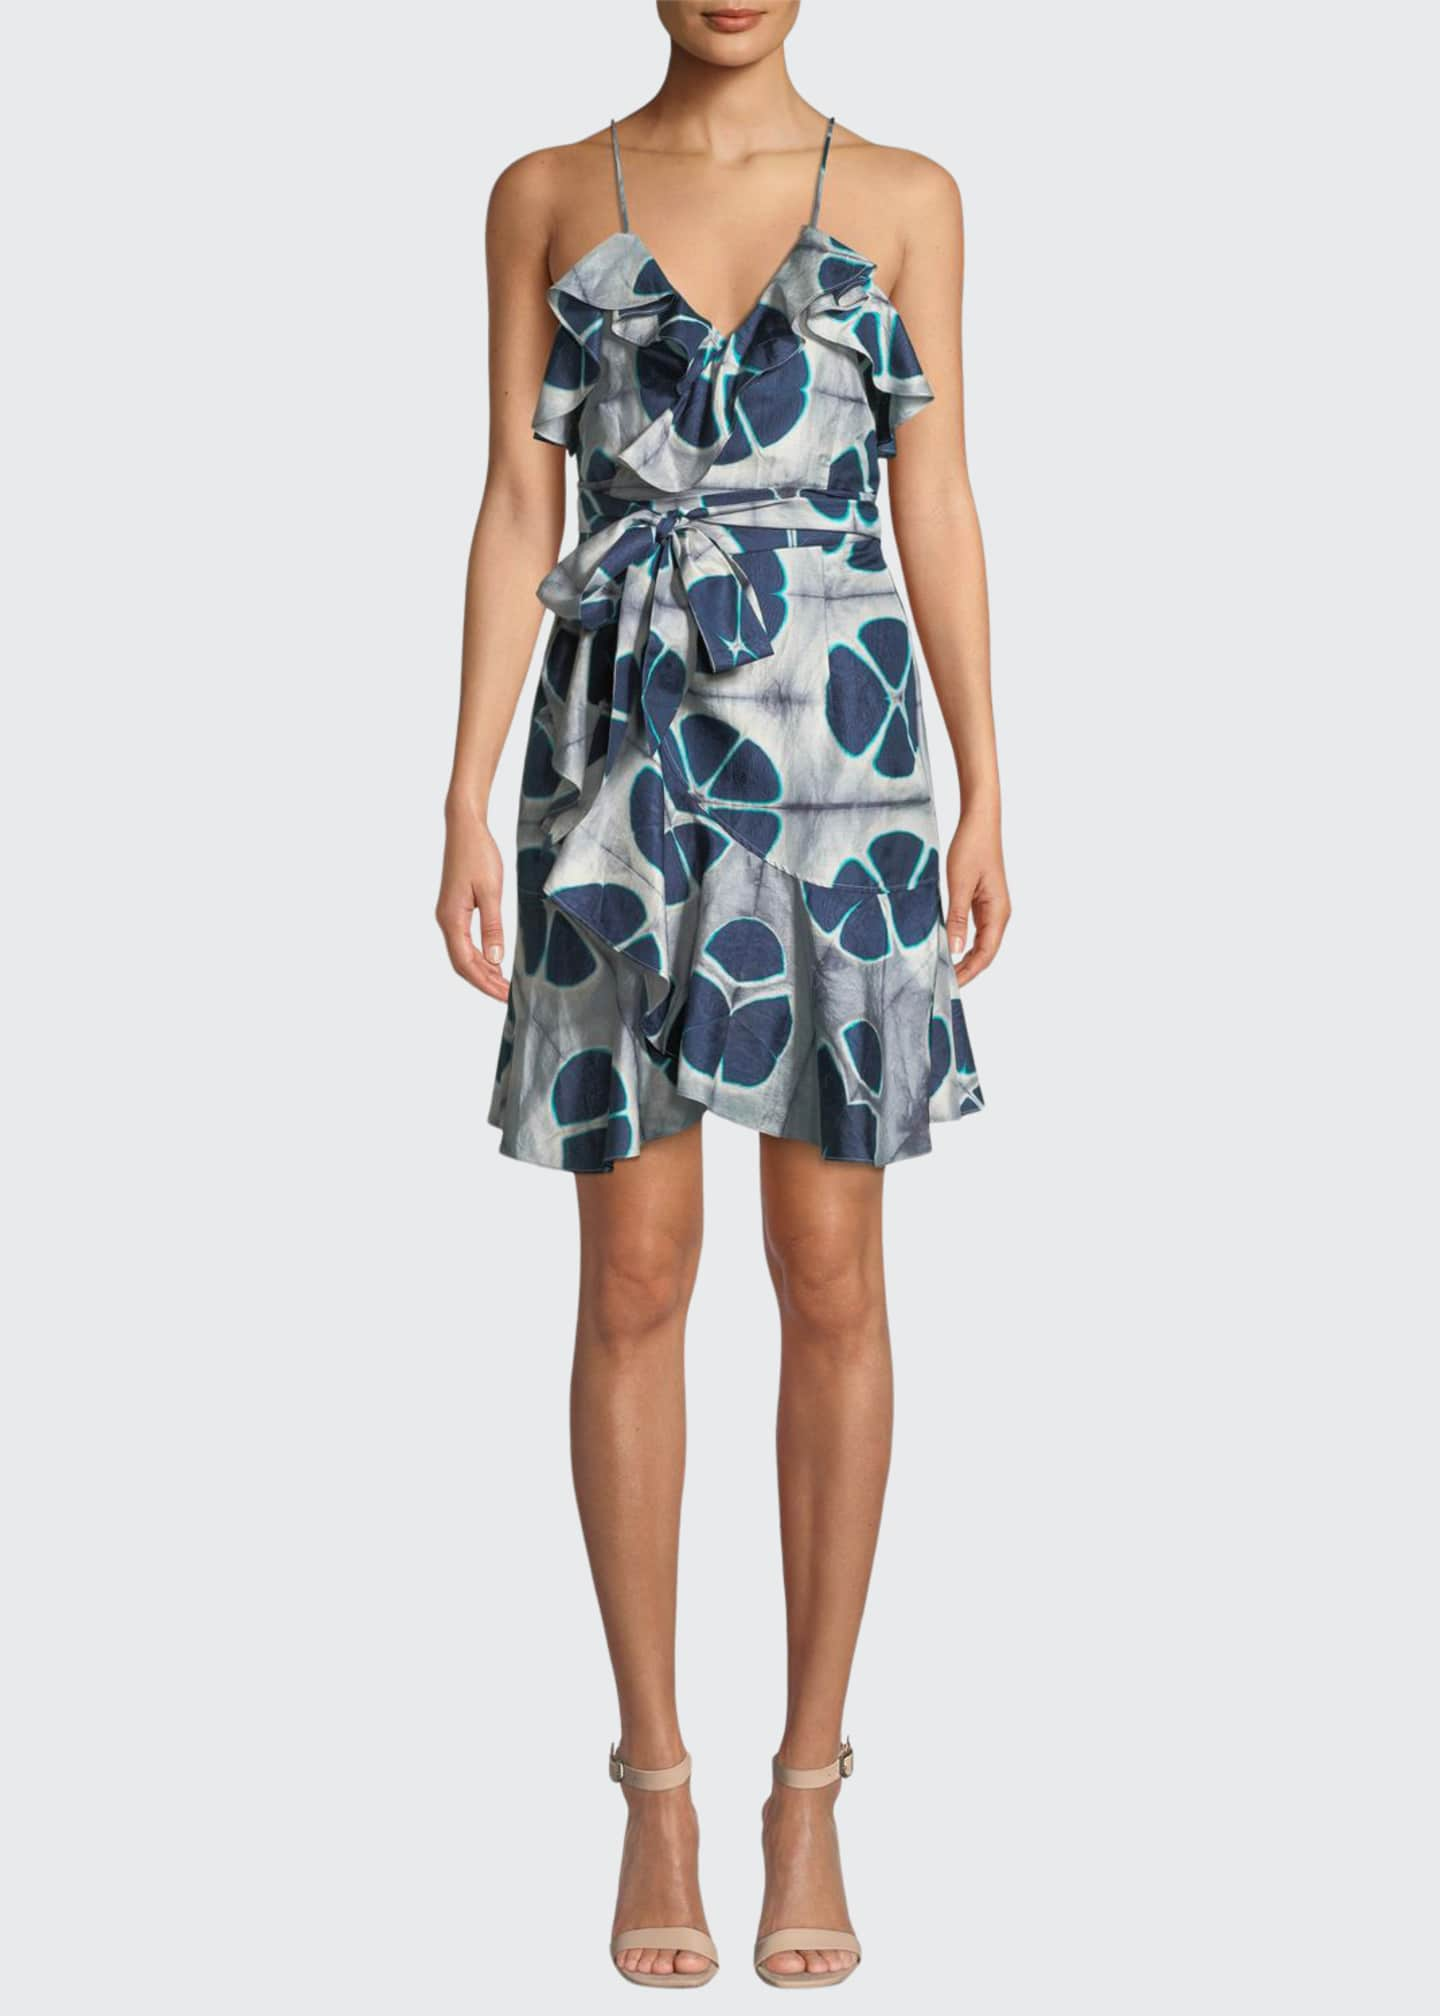 Kalani Silk Patterned Flounce Self-Tie Dress